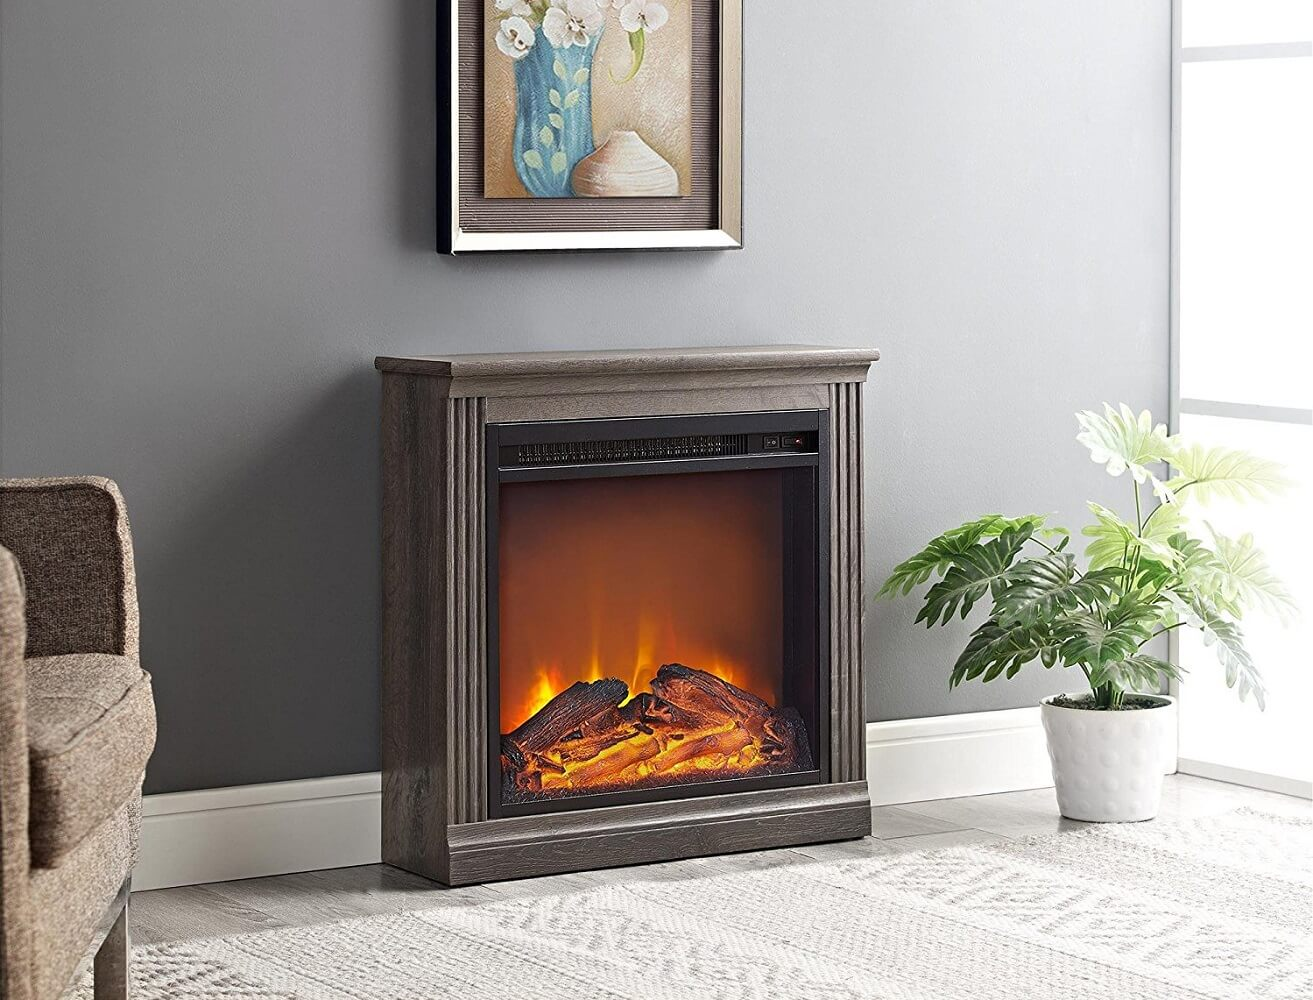 Narrow Brown Electric Wall Fireplace